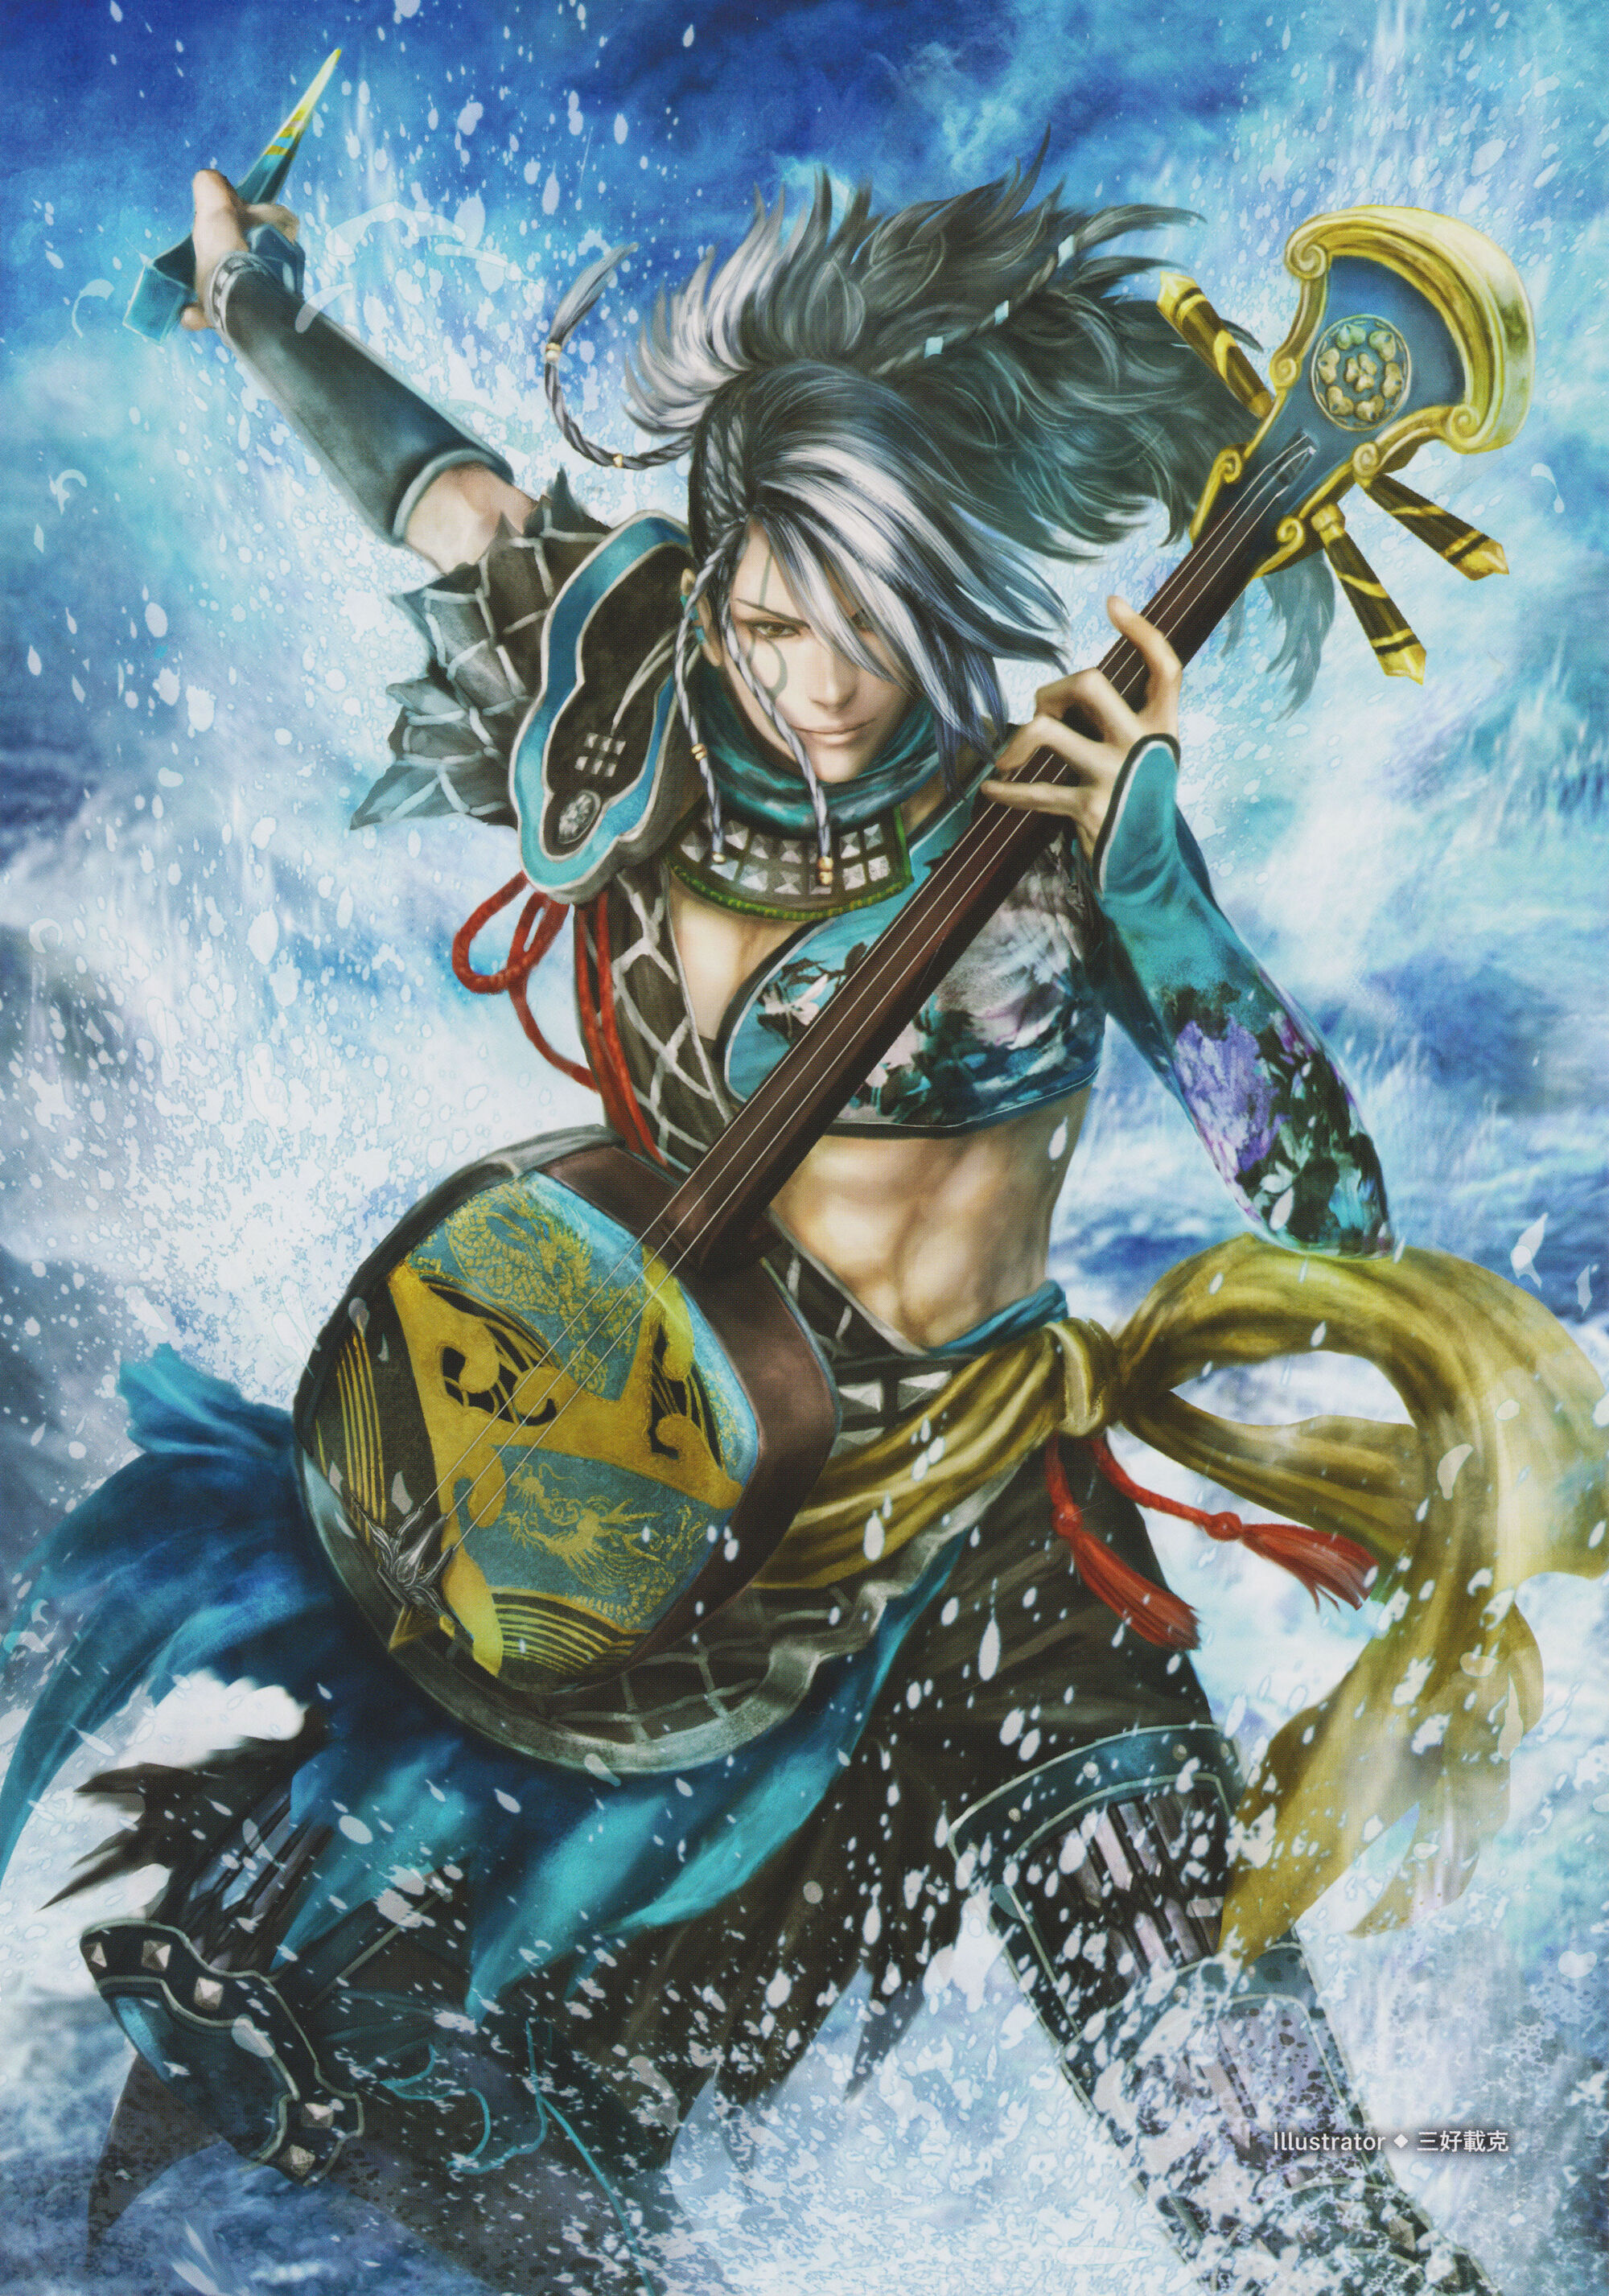 dynasty warriors 8 character guide